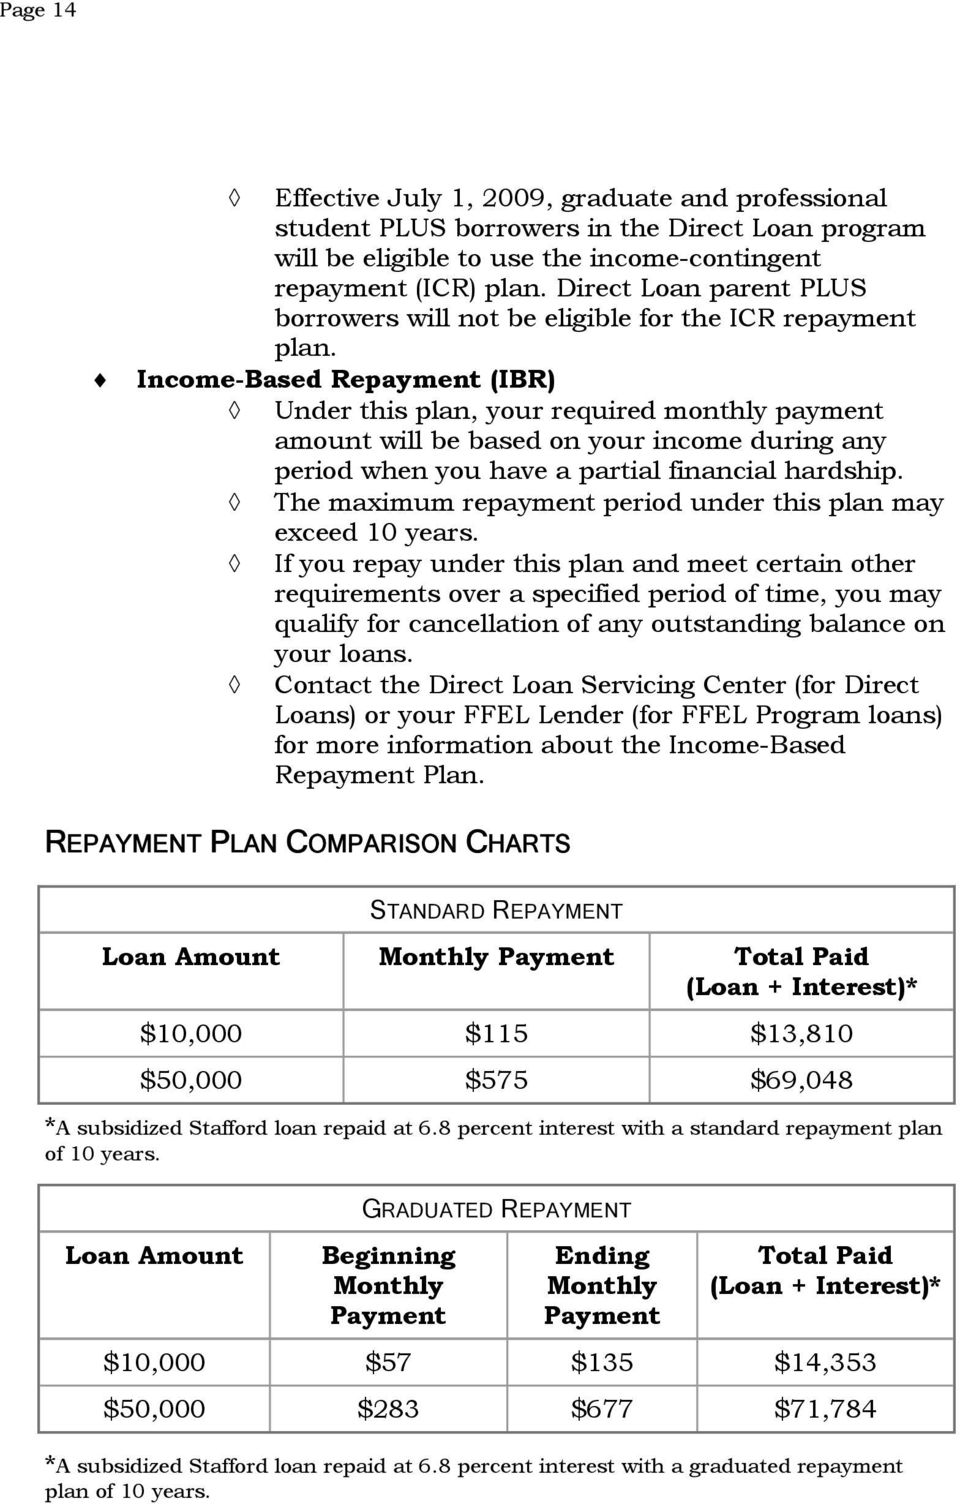 Income-Based Repayment (IBR) Under this plan, your required monthly payment amount will be based on your income during any period when you have a partial financial hardship.